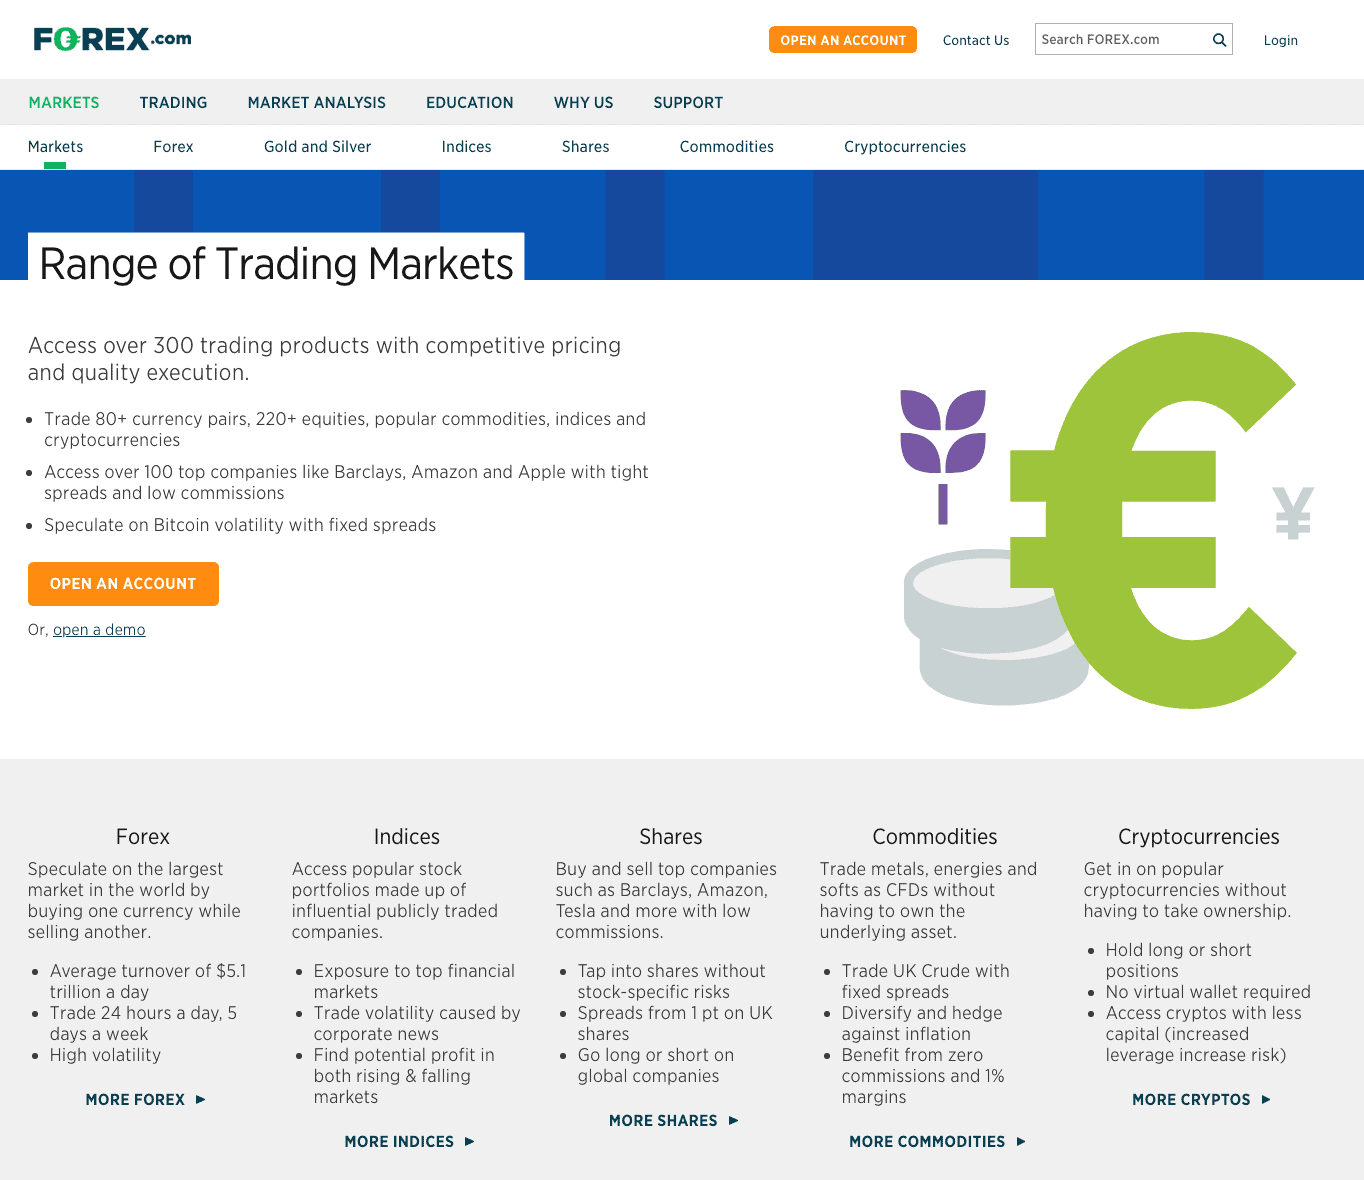 Forex.com markets and instruments.